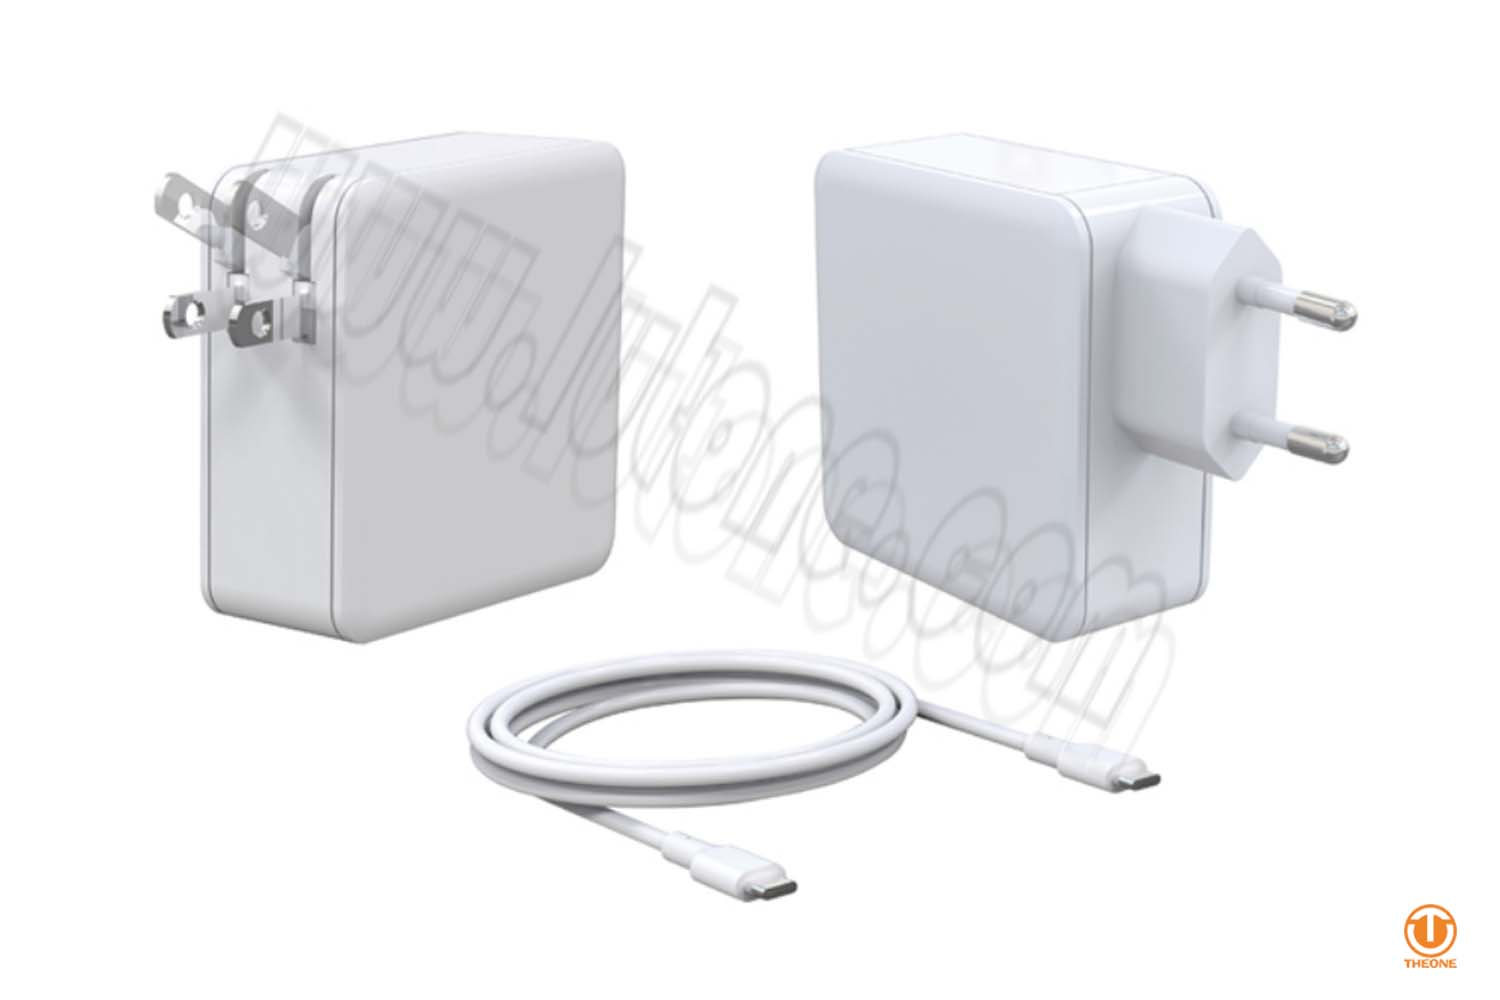 ta06a3-3 usb-c power delivery charger